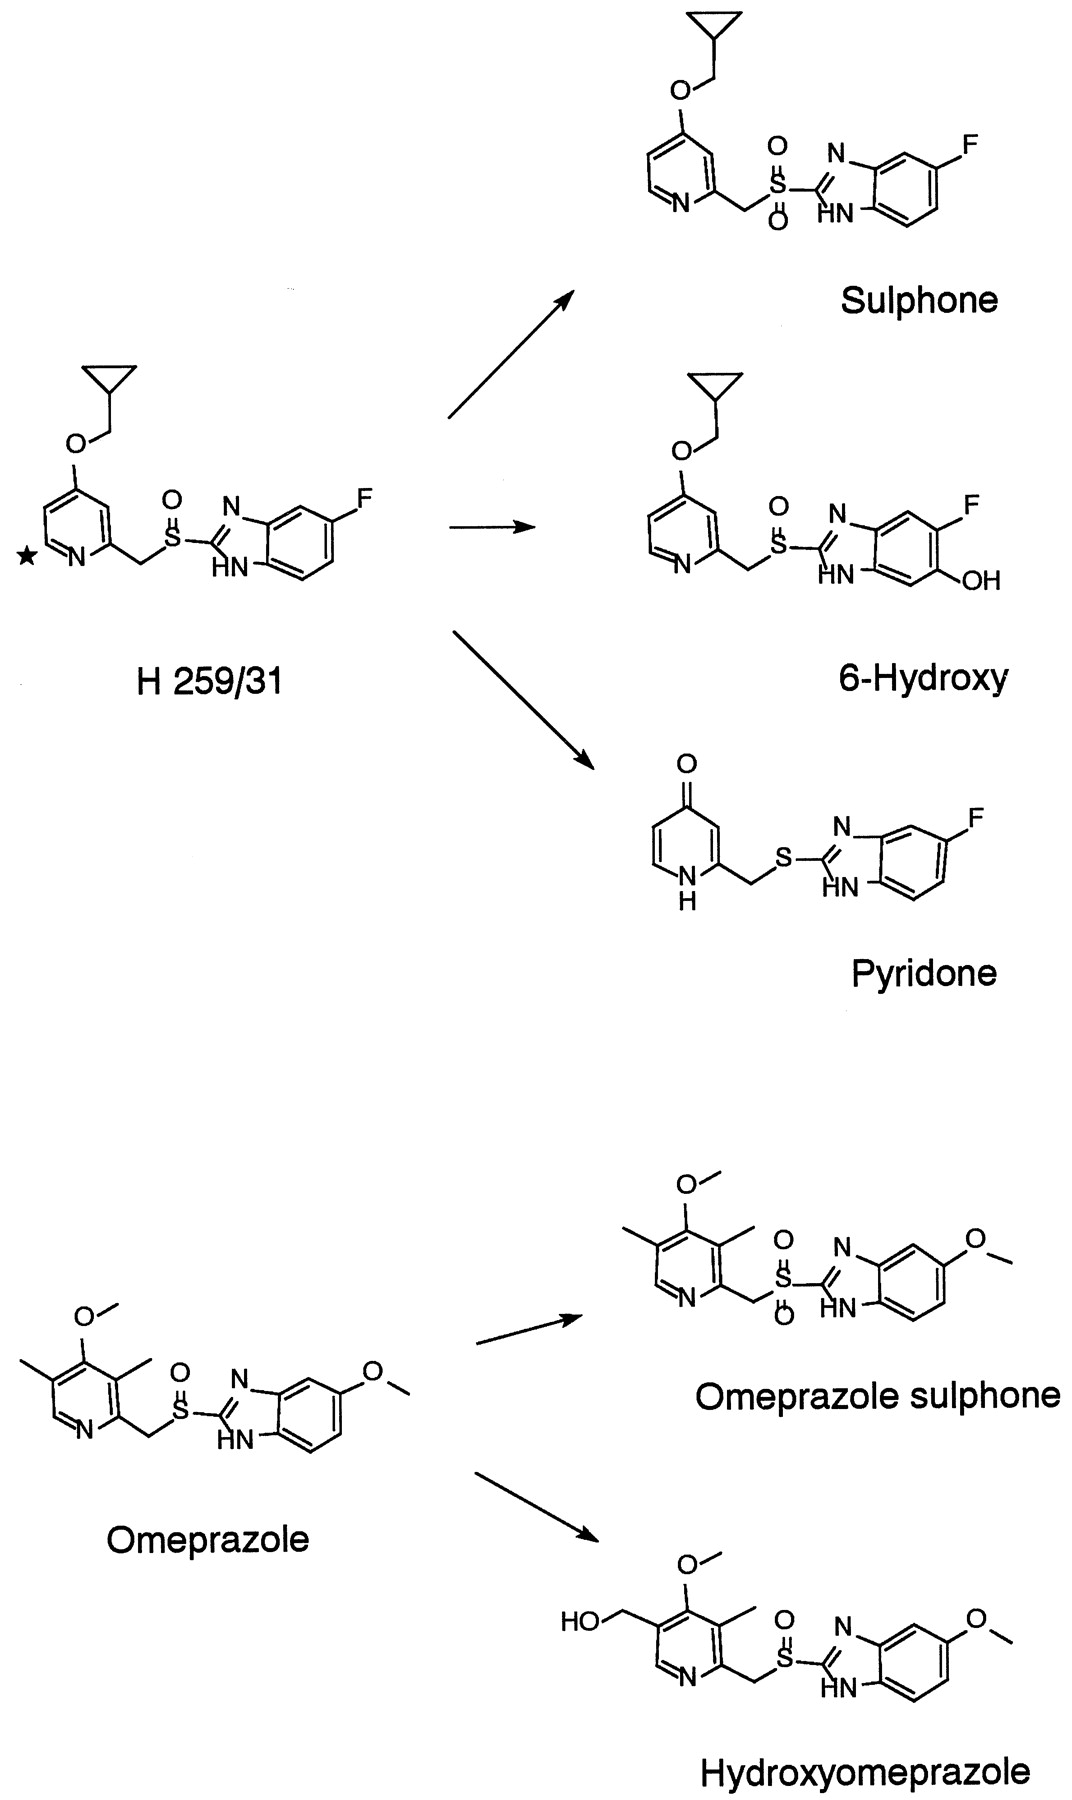 Stereoselective Metabolism by Human Liver CYP Enzymes of A